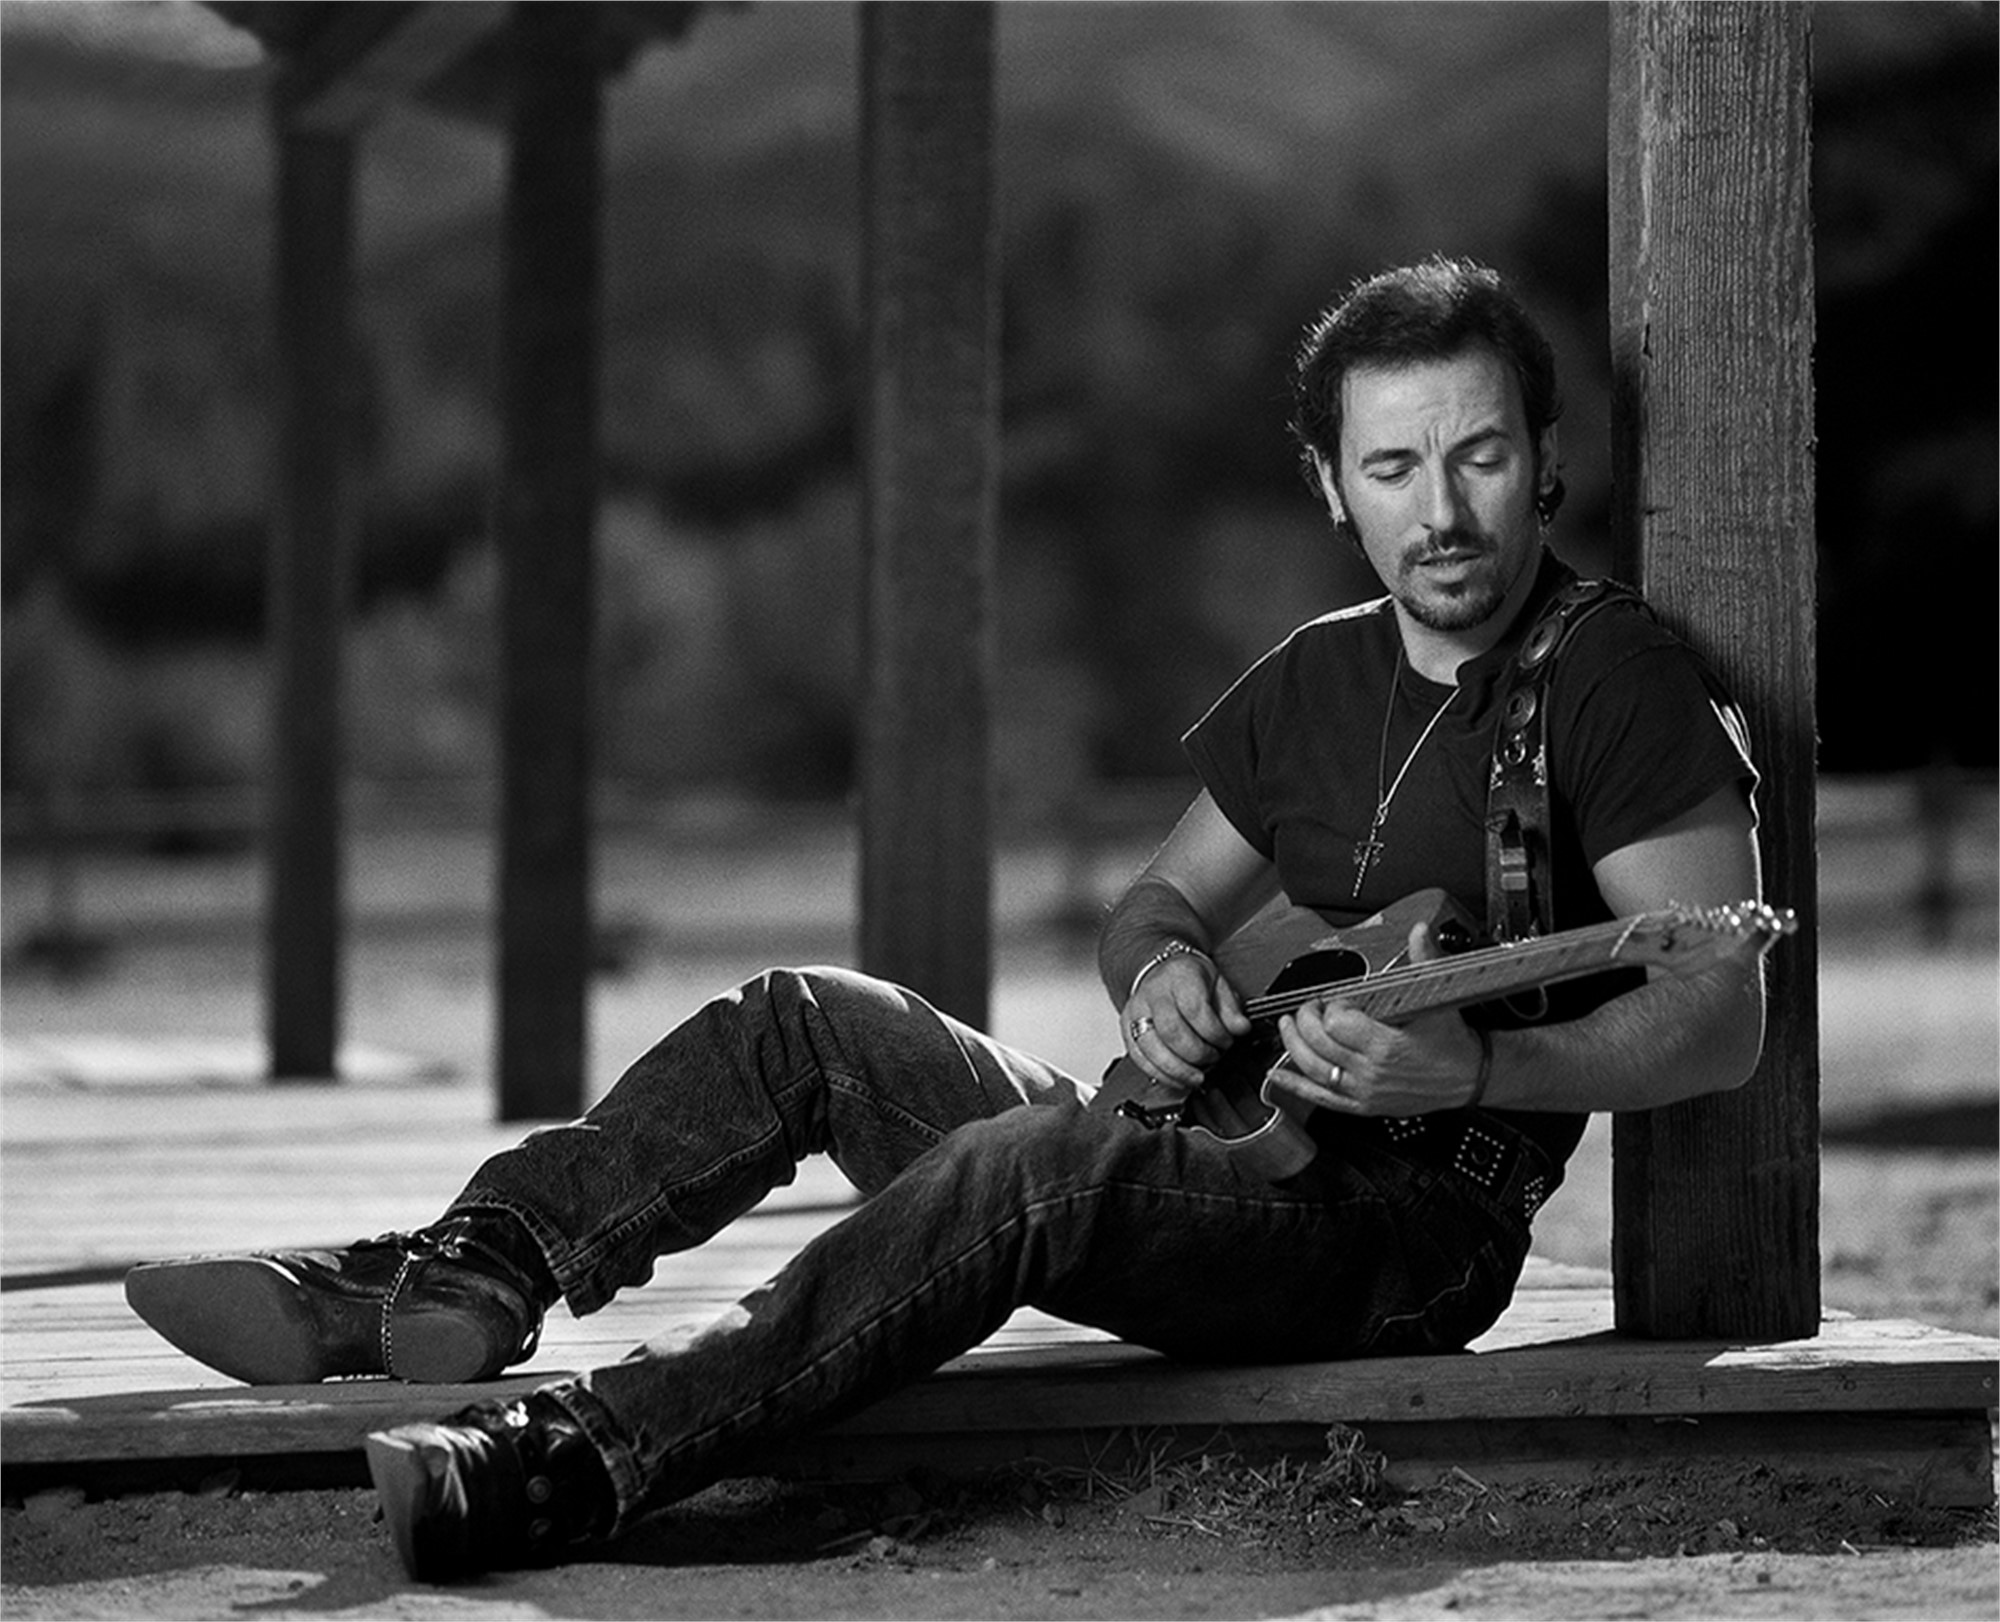 91152 Bruce Springsteen With Guitar BW by Timothy White